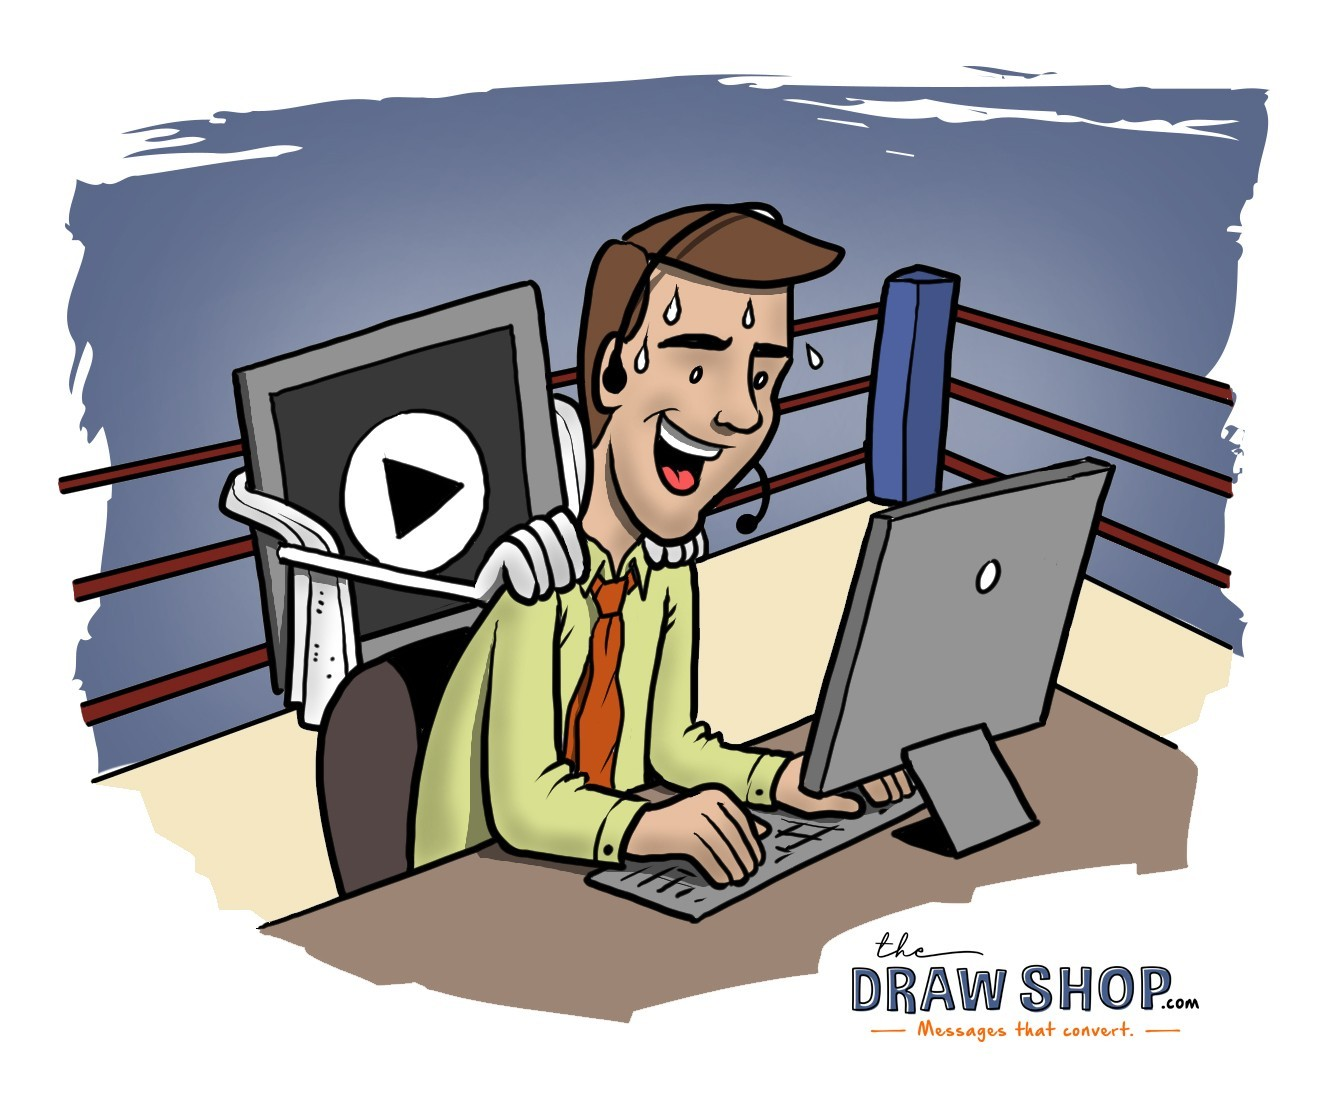 The image shows a customer support rep at his desk. The desk is in a boxing ring, and the rep is on a call, sweating. Behind him, The Draw Shop's mascot is rubbing his shoulders a la boxing coach.